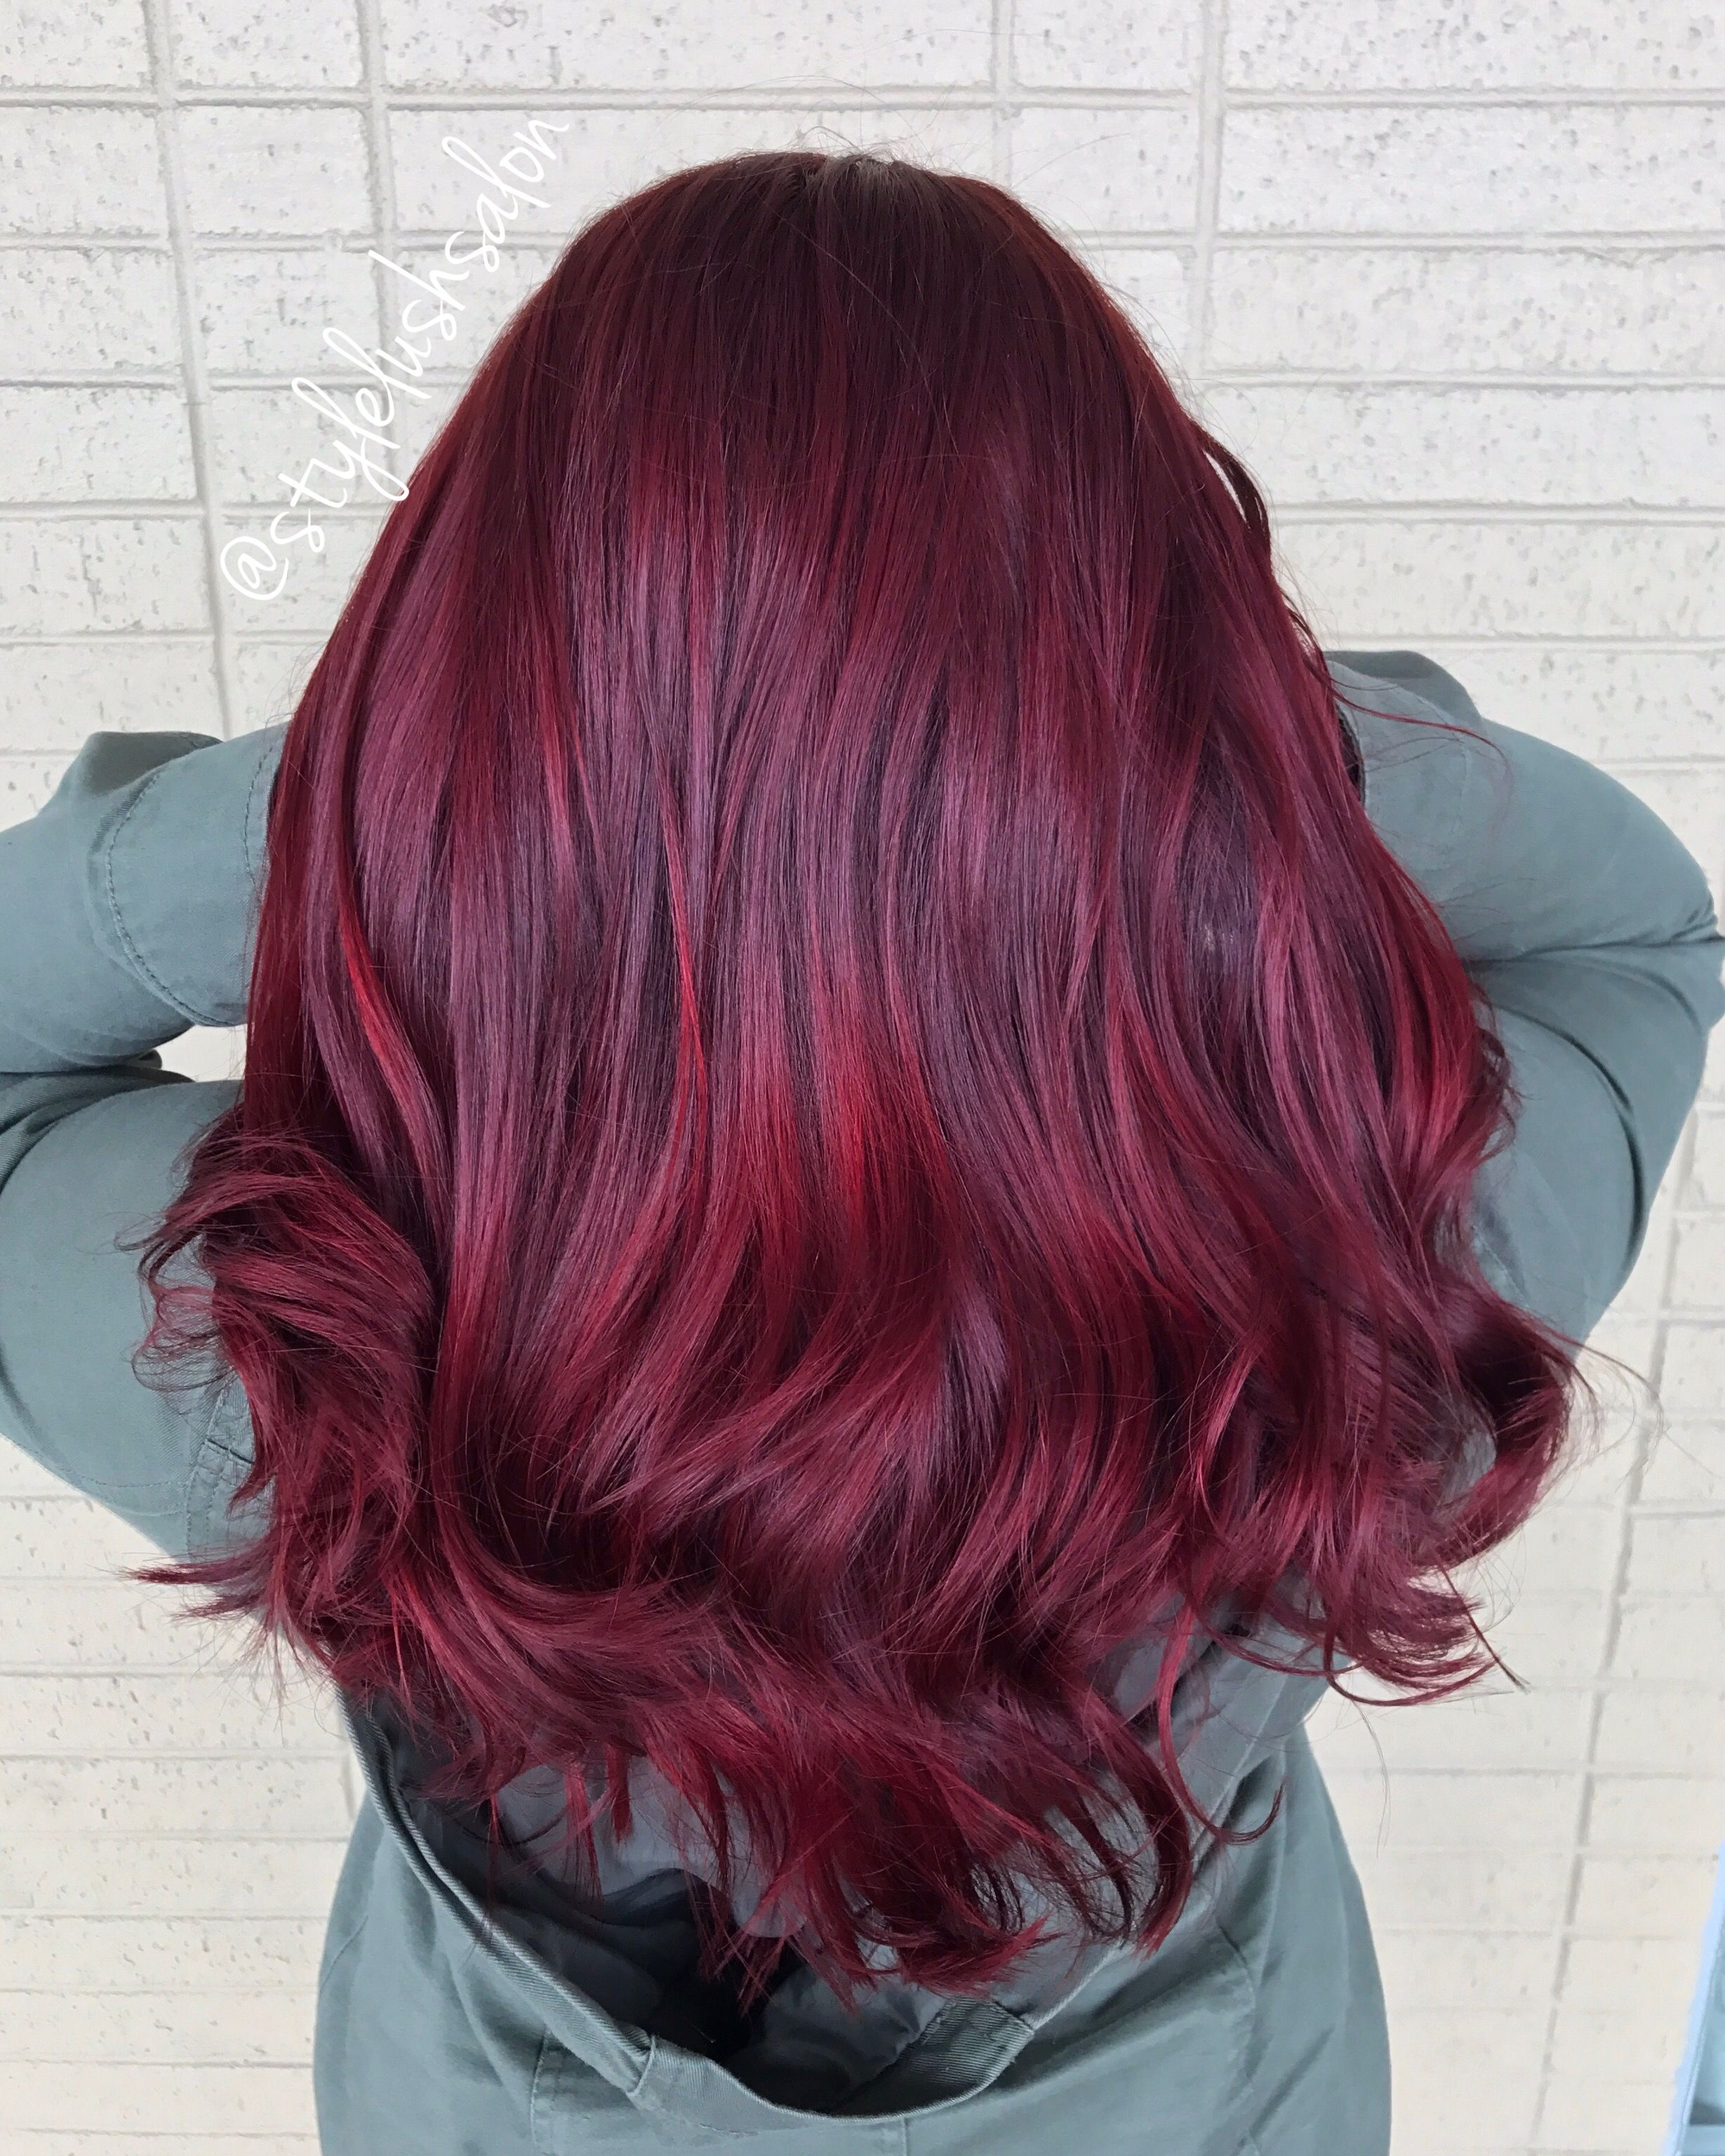 Reddish brown hair color joico caramel brown hair color free vivid red joico color intensity style lush salon pinterest rh pinterest com reddish brown hair color for black women caramel brown hair color nvjuhfo Gallery